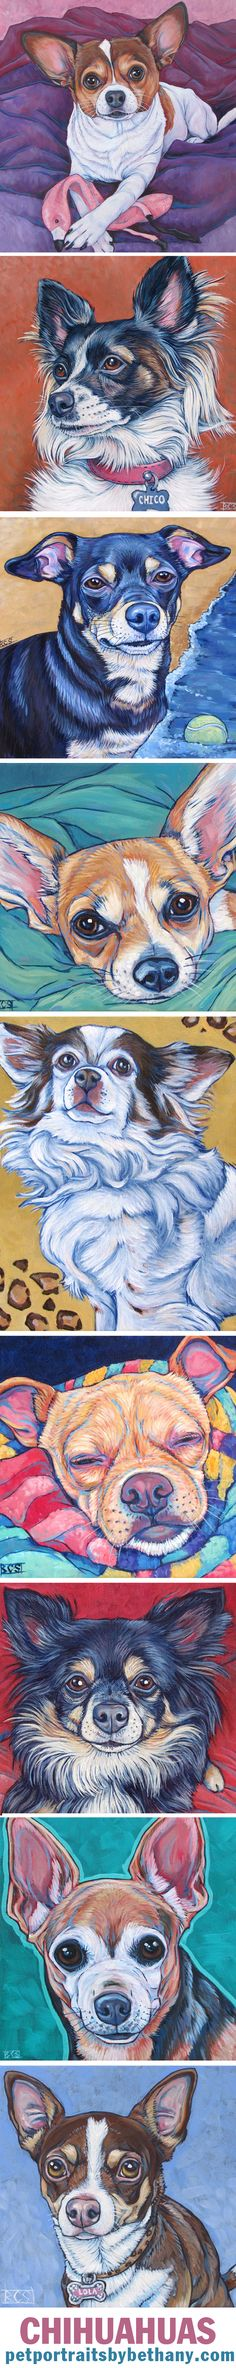 Chihuahua Dogs Custom Pet Portrait Paintings in Acrylic Paint on Canvas from Pets